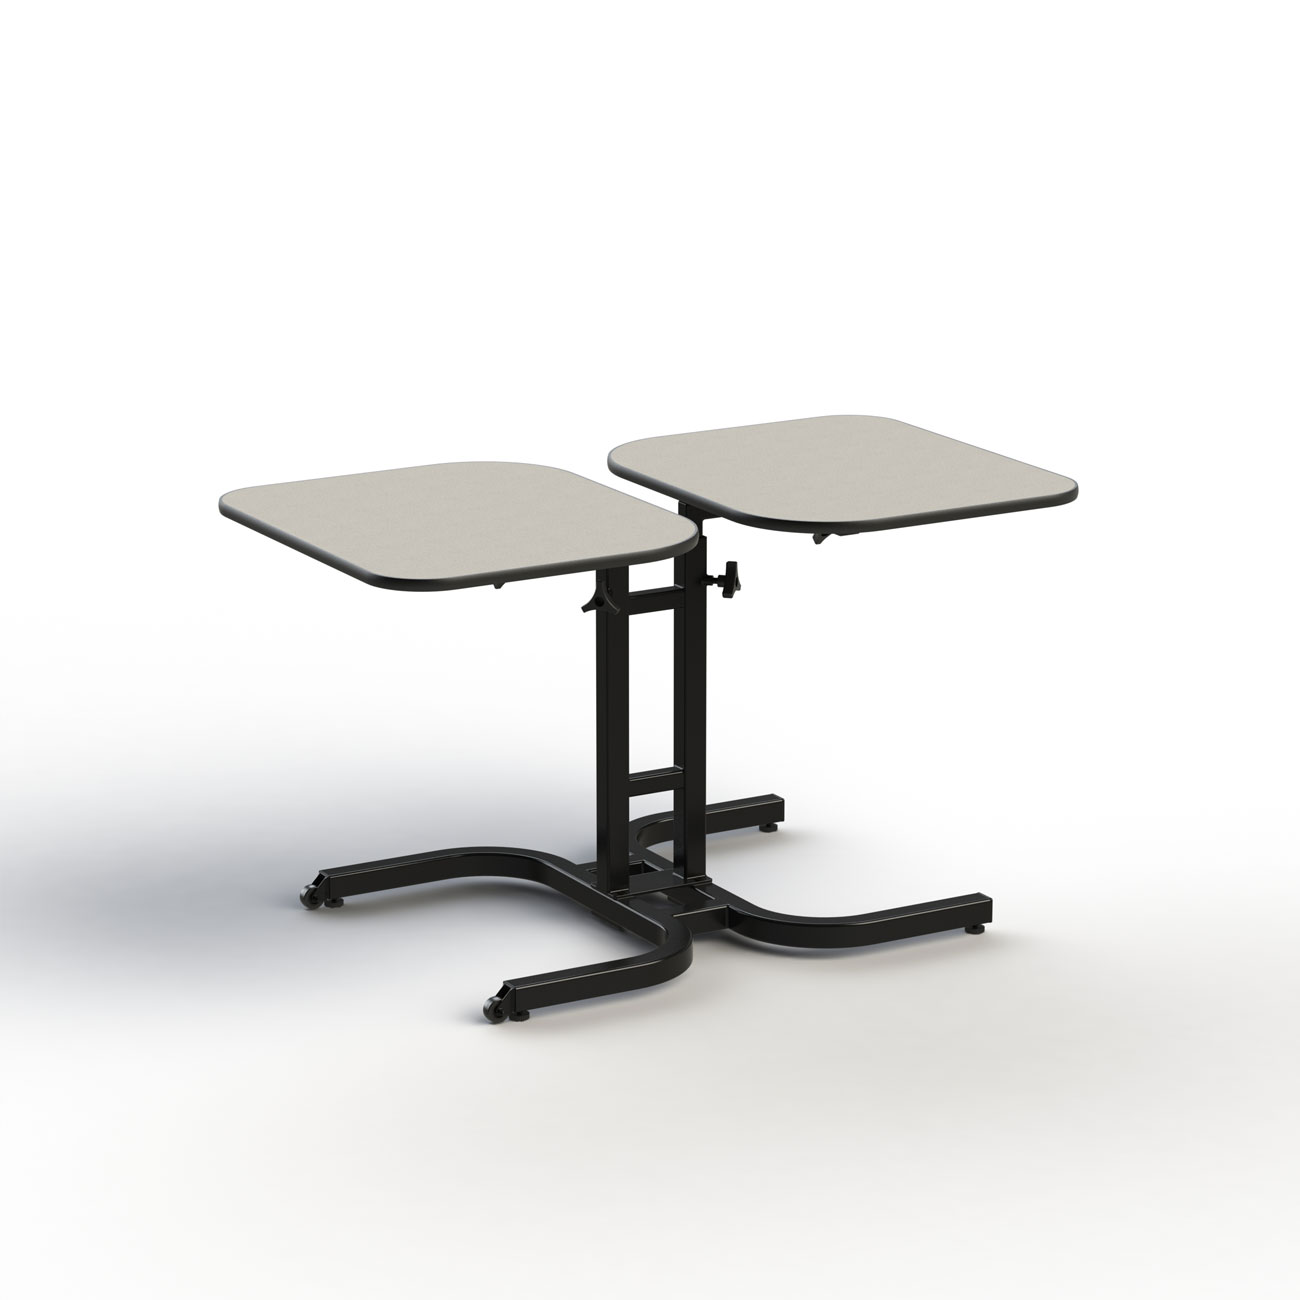 TITAN 2-Person Adj. Assistive Lift and Move Table with Lazy Susan